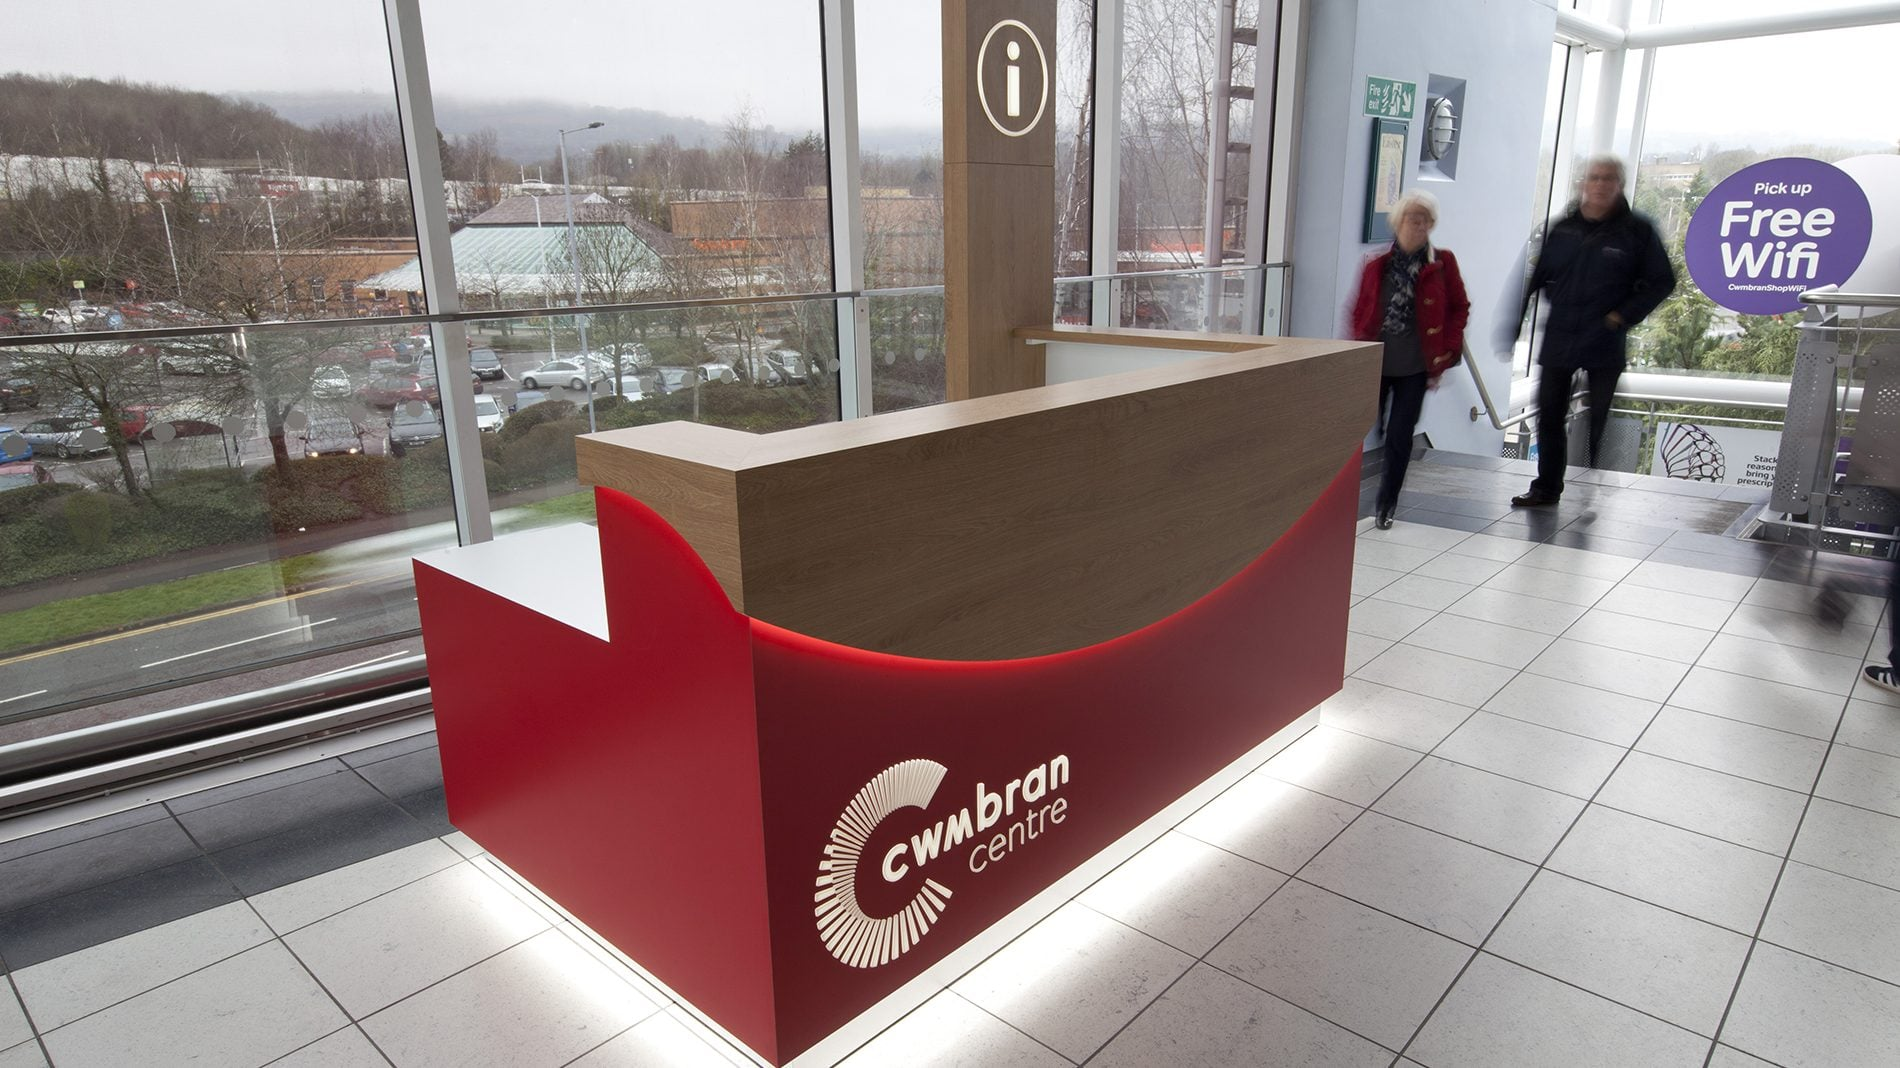 Cwmbran castle branded information desk